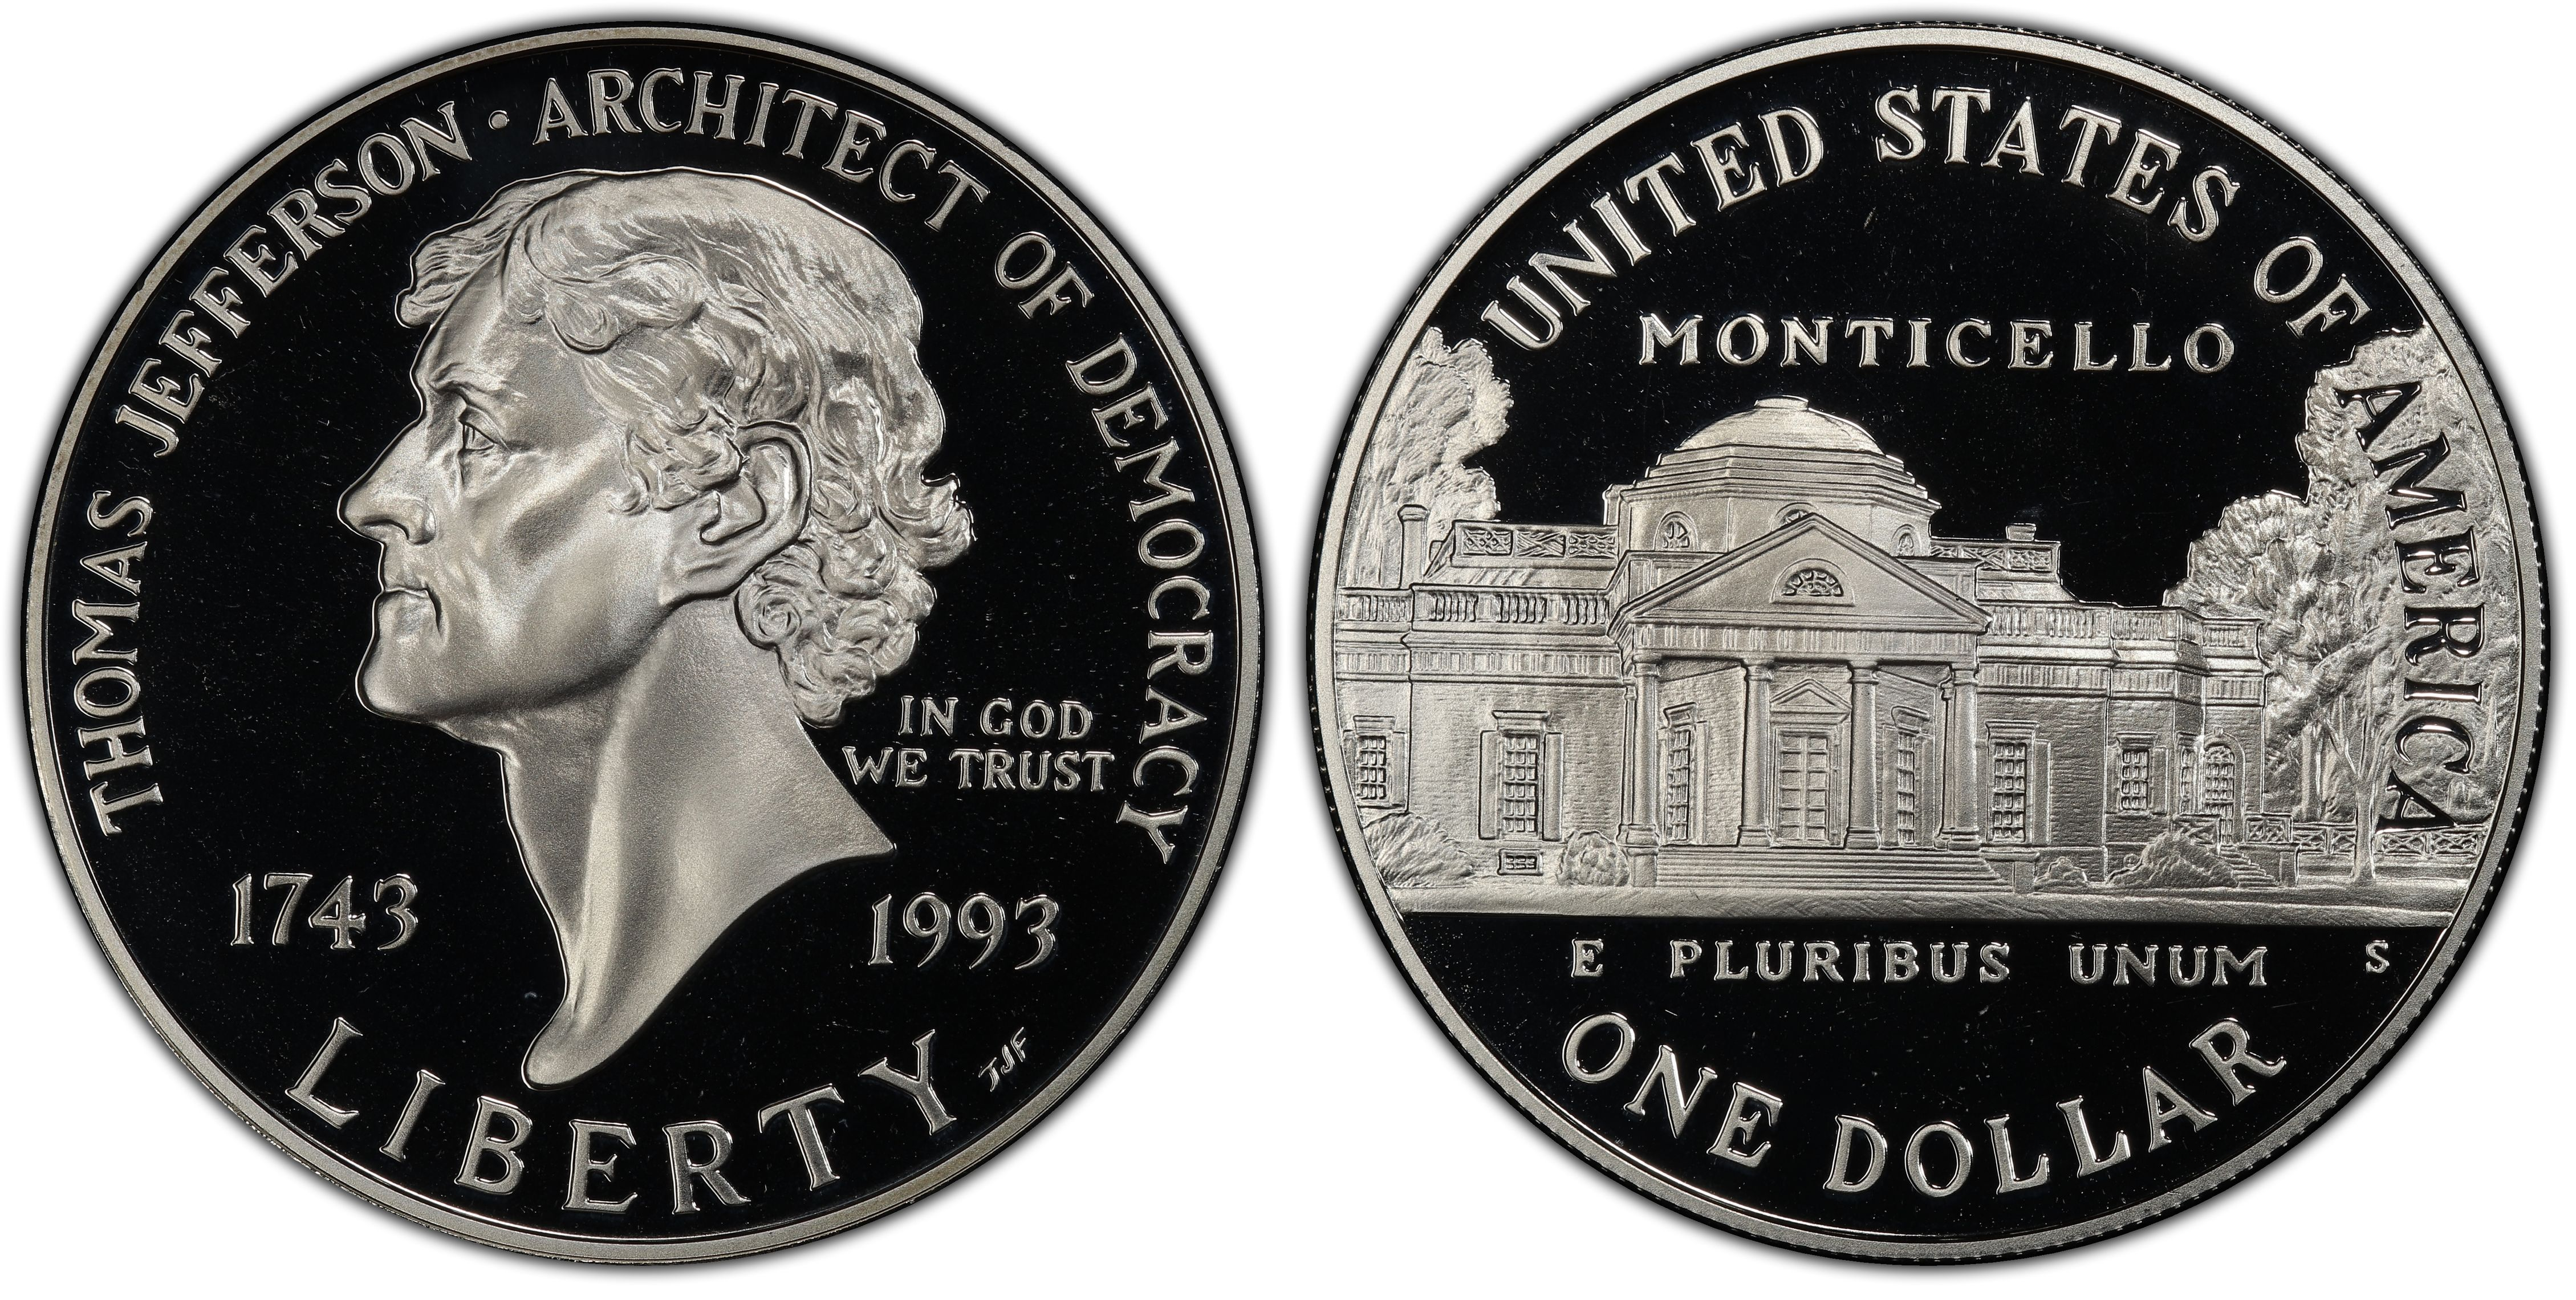 1993 Thomas Jefferson 250th Aniv Proof 90/% Silver Dollar Coin ONLY $1